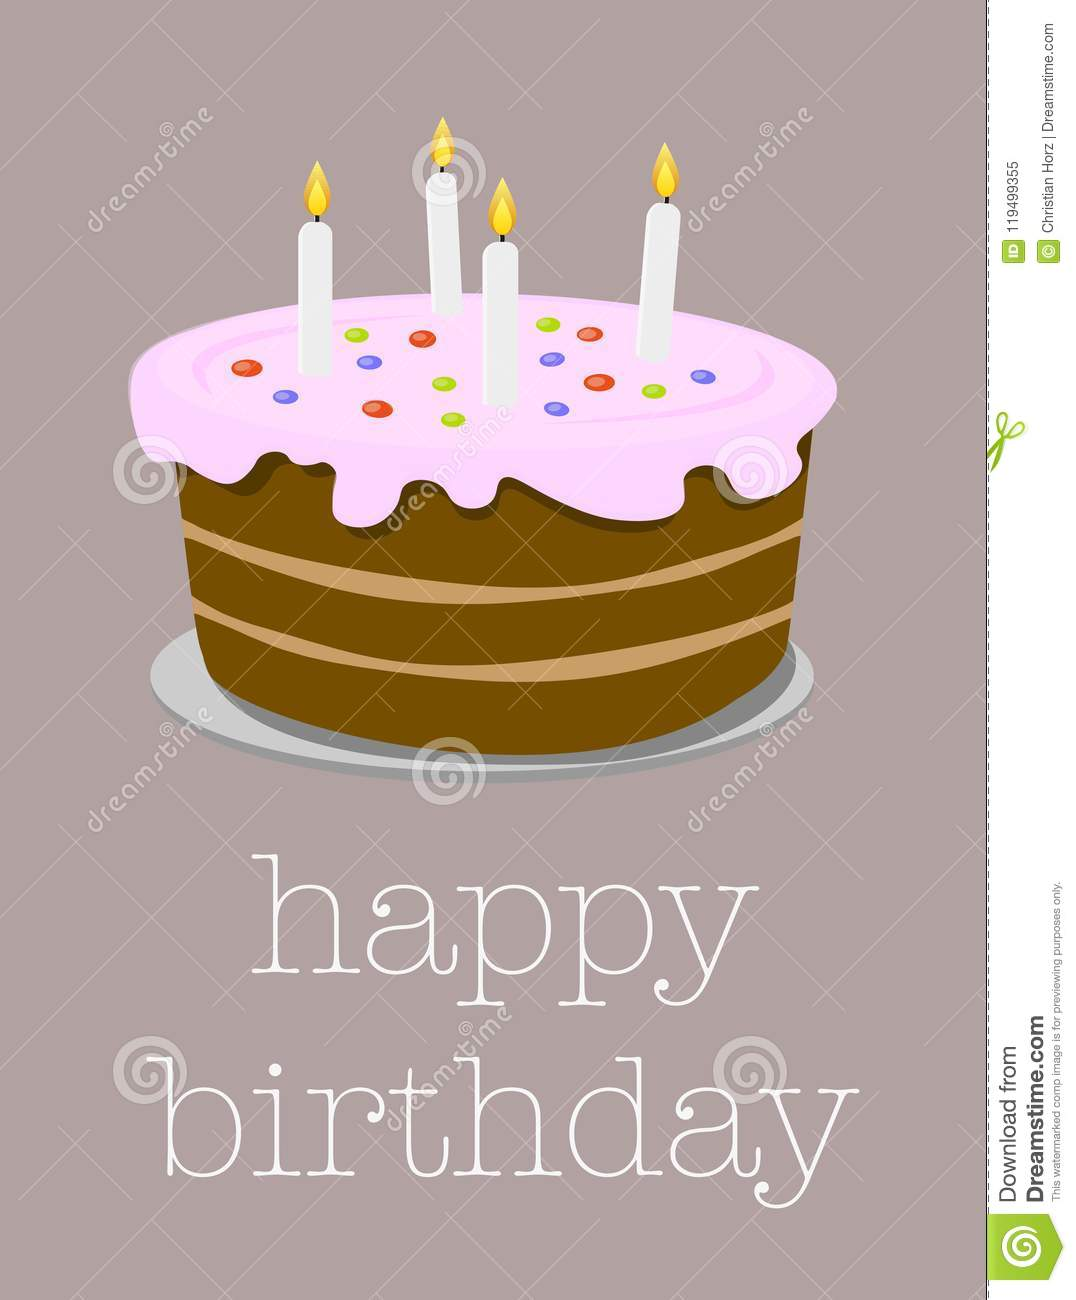 Happy birthday greeting card with birthday cake illustration stock download happy birthday greeting card with birthday cake illustration stock vector illustration of happiness m4hsunfo